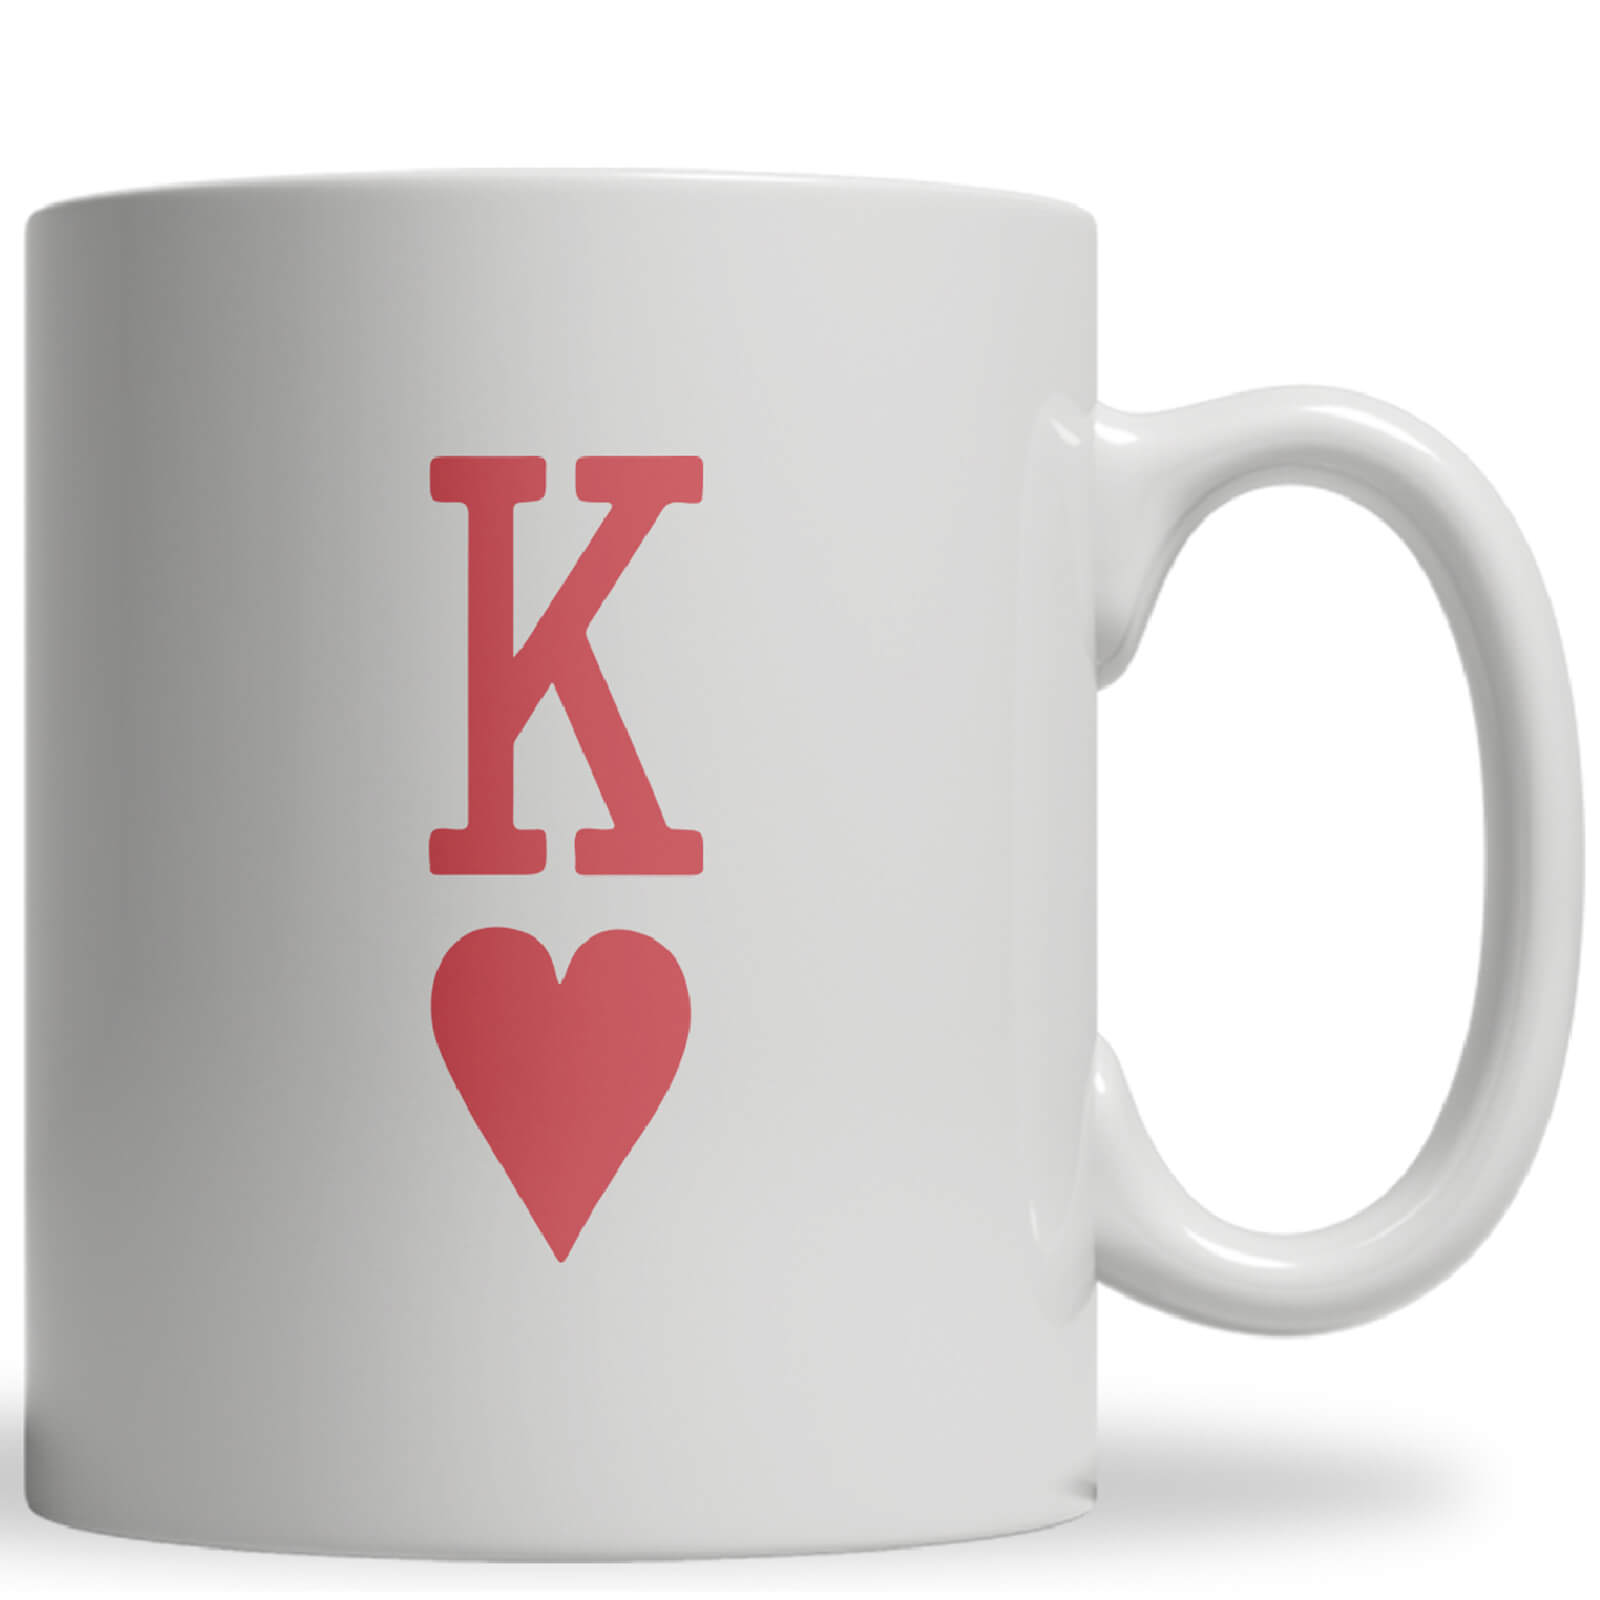 King of Hearts Ceramic Mug